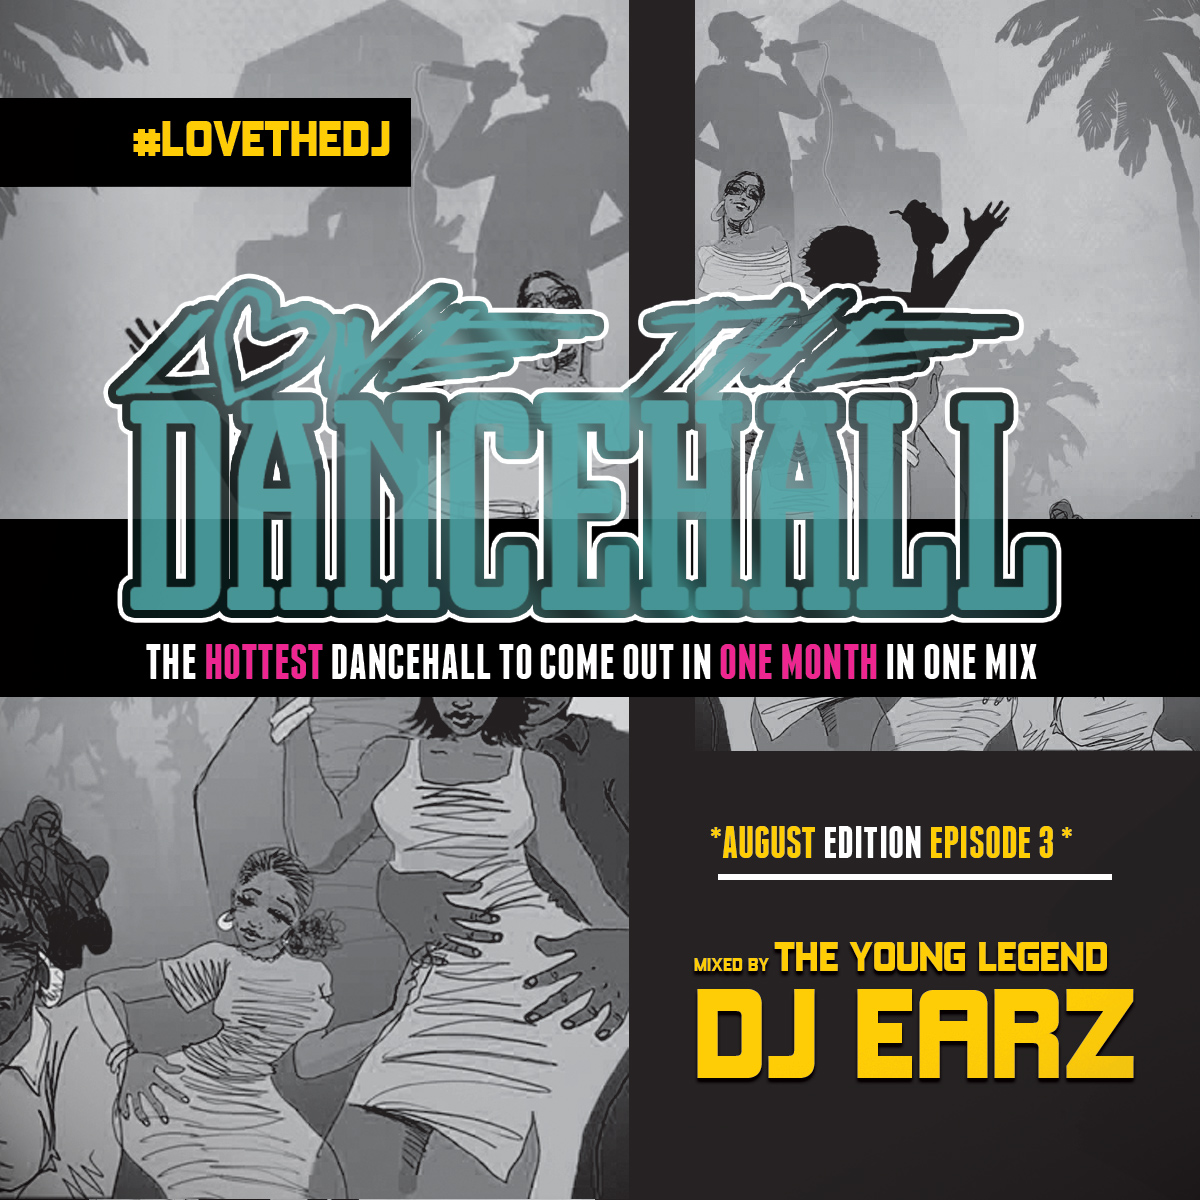 DJ EARZ – LOVE THE DANCEHALL (AUGUST EDITION) EPISODE 3